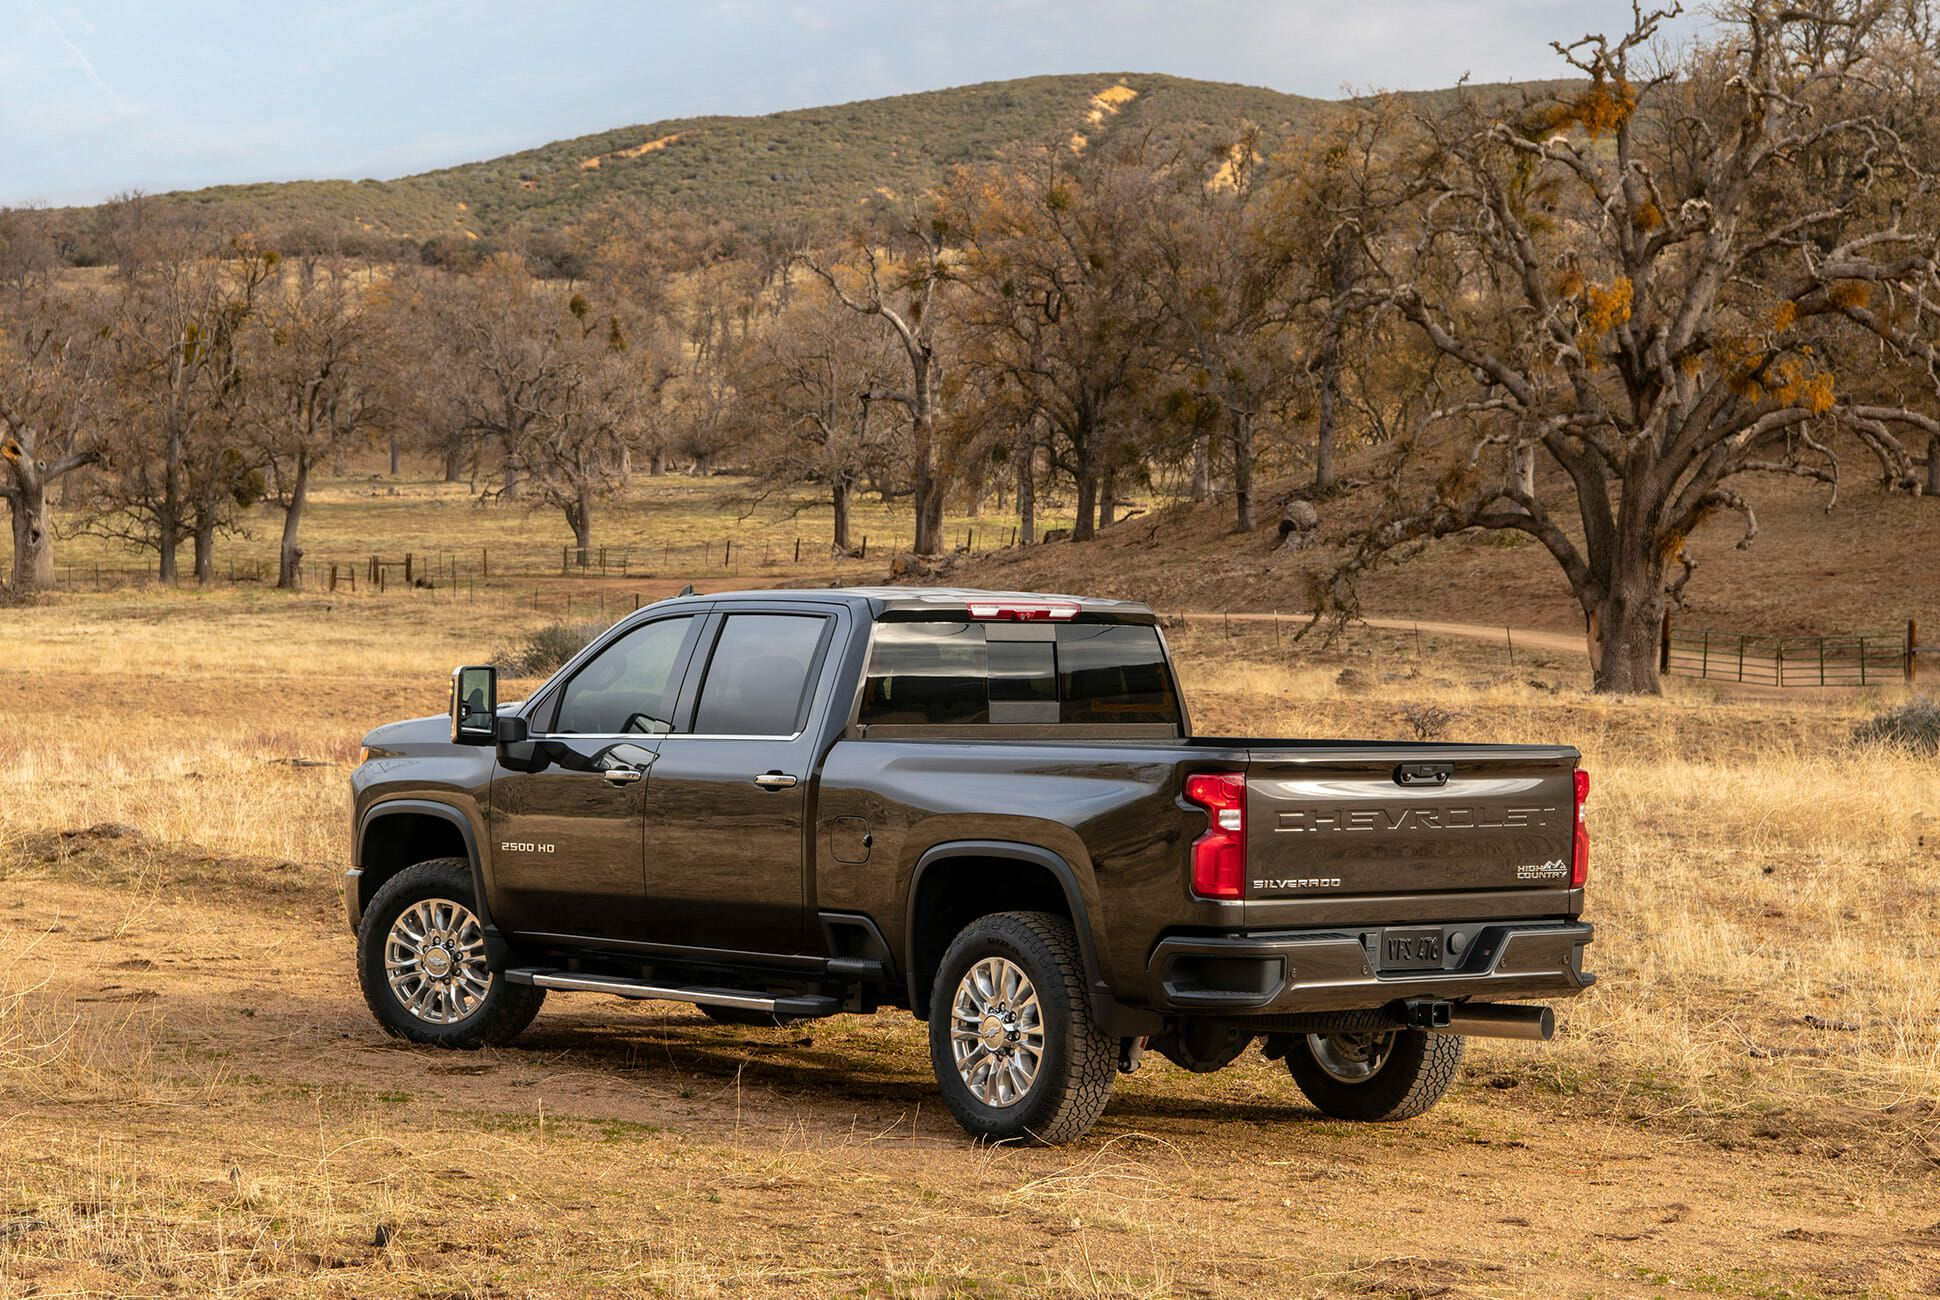 2020-Chevrolet-Silverado-2500HD-High-Country-Review-gear-patrol-slide-2